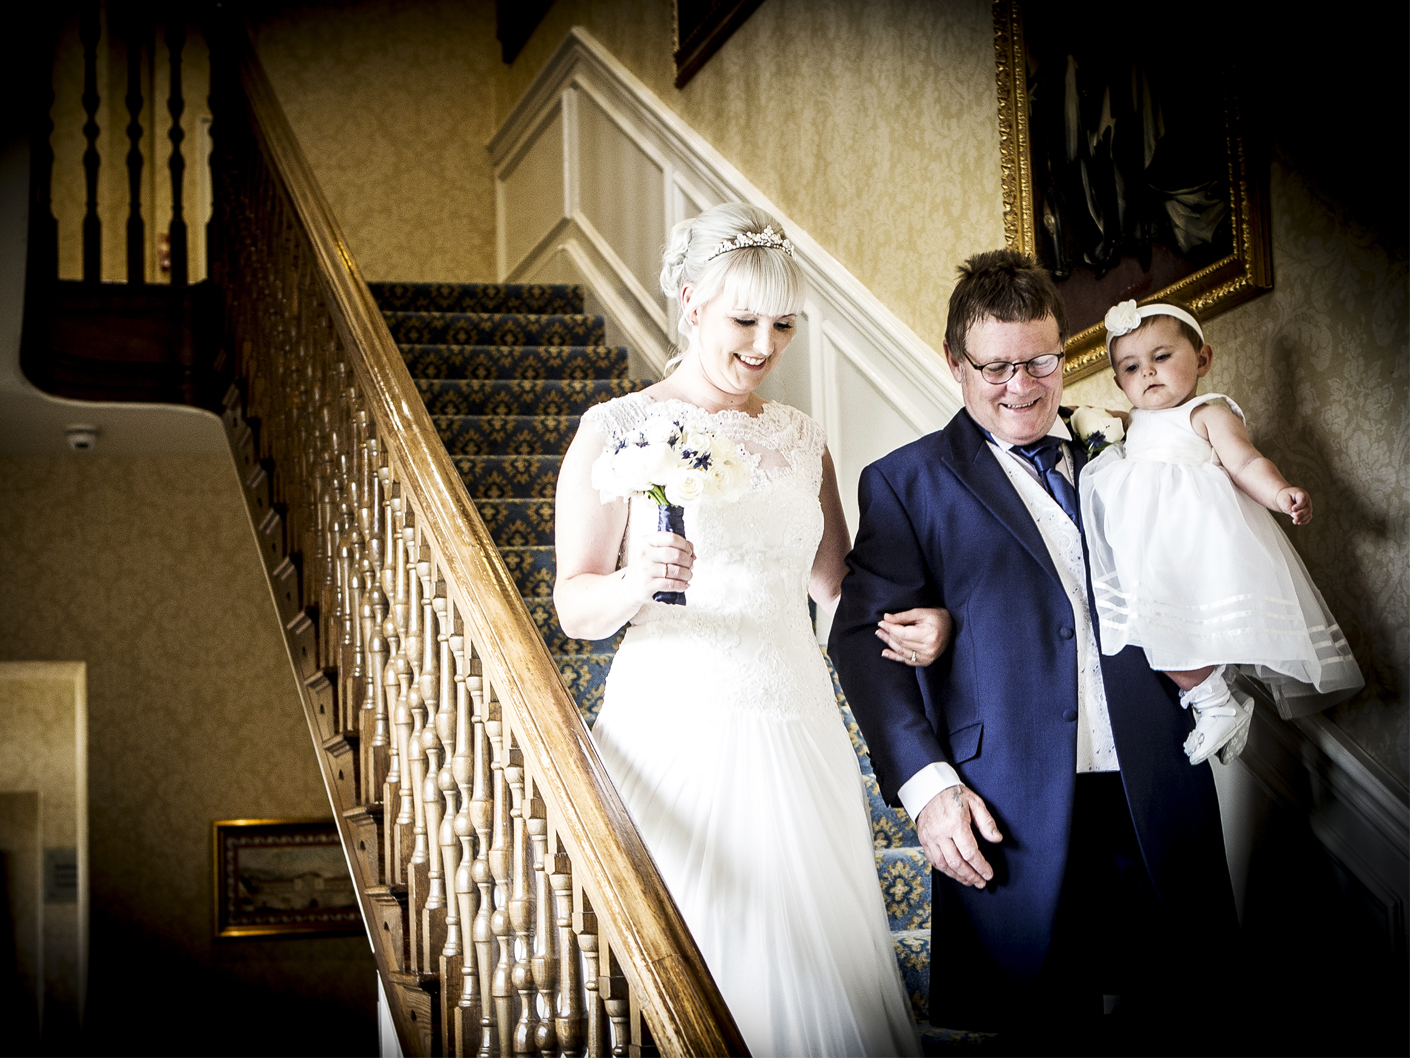 wedding-photography-shot-before-the-ceremony-at-cranage-hall-cheshire